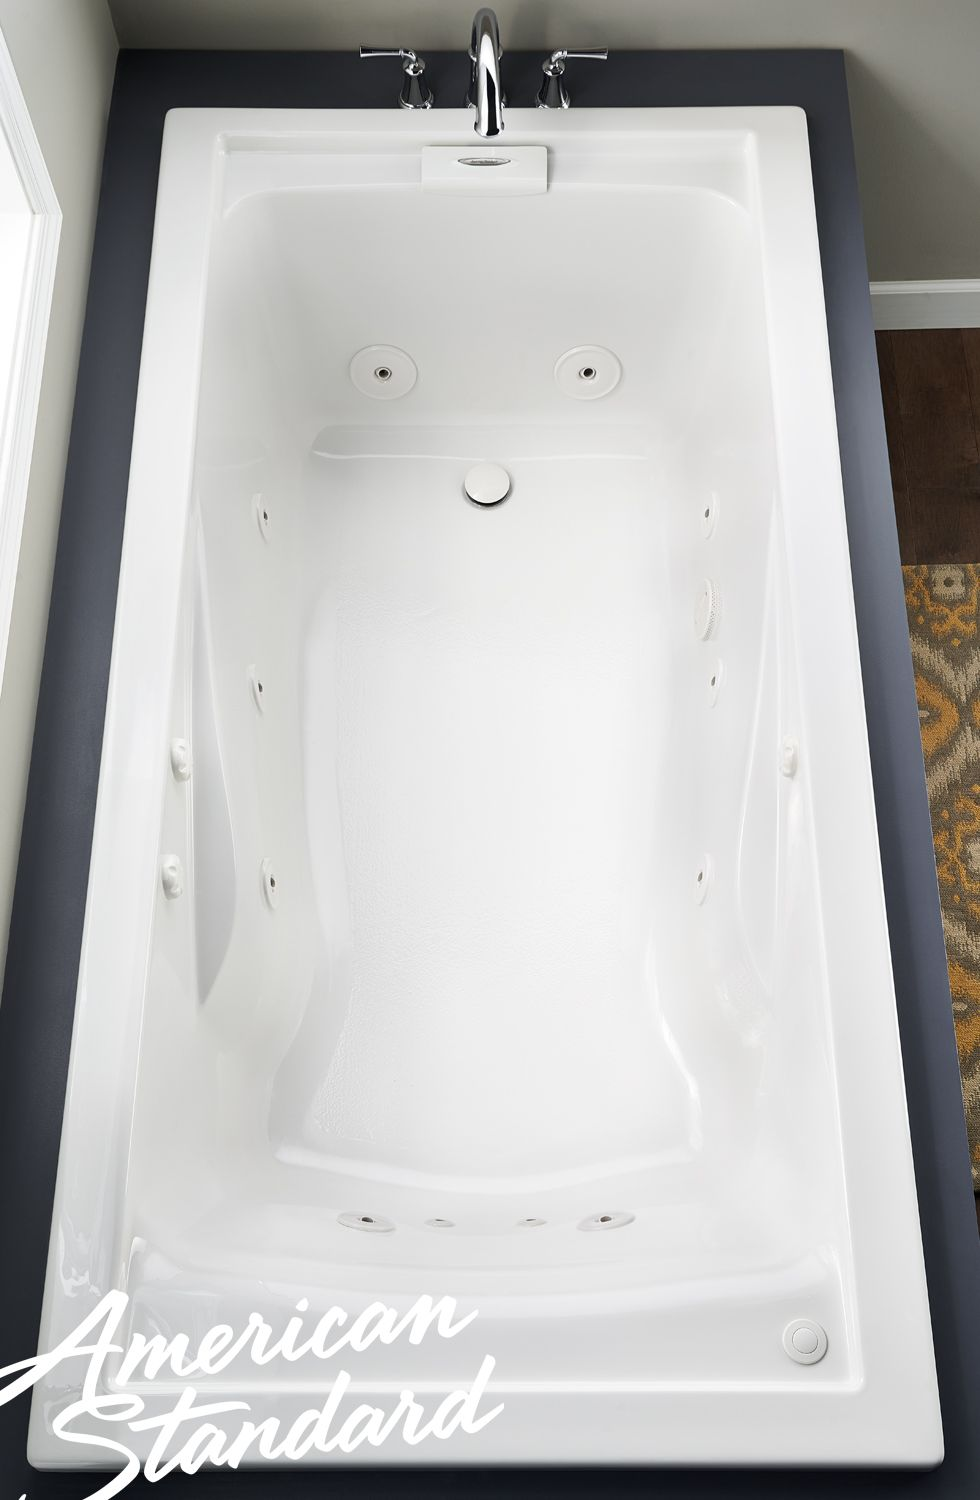 Bring relaxation to the bathroom with The American Standard Champion ...